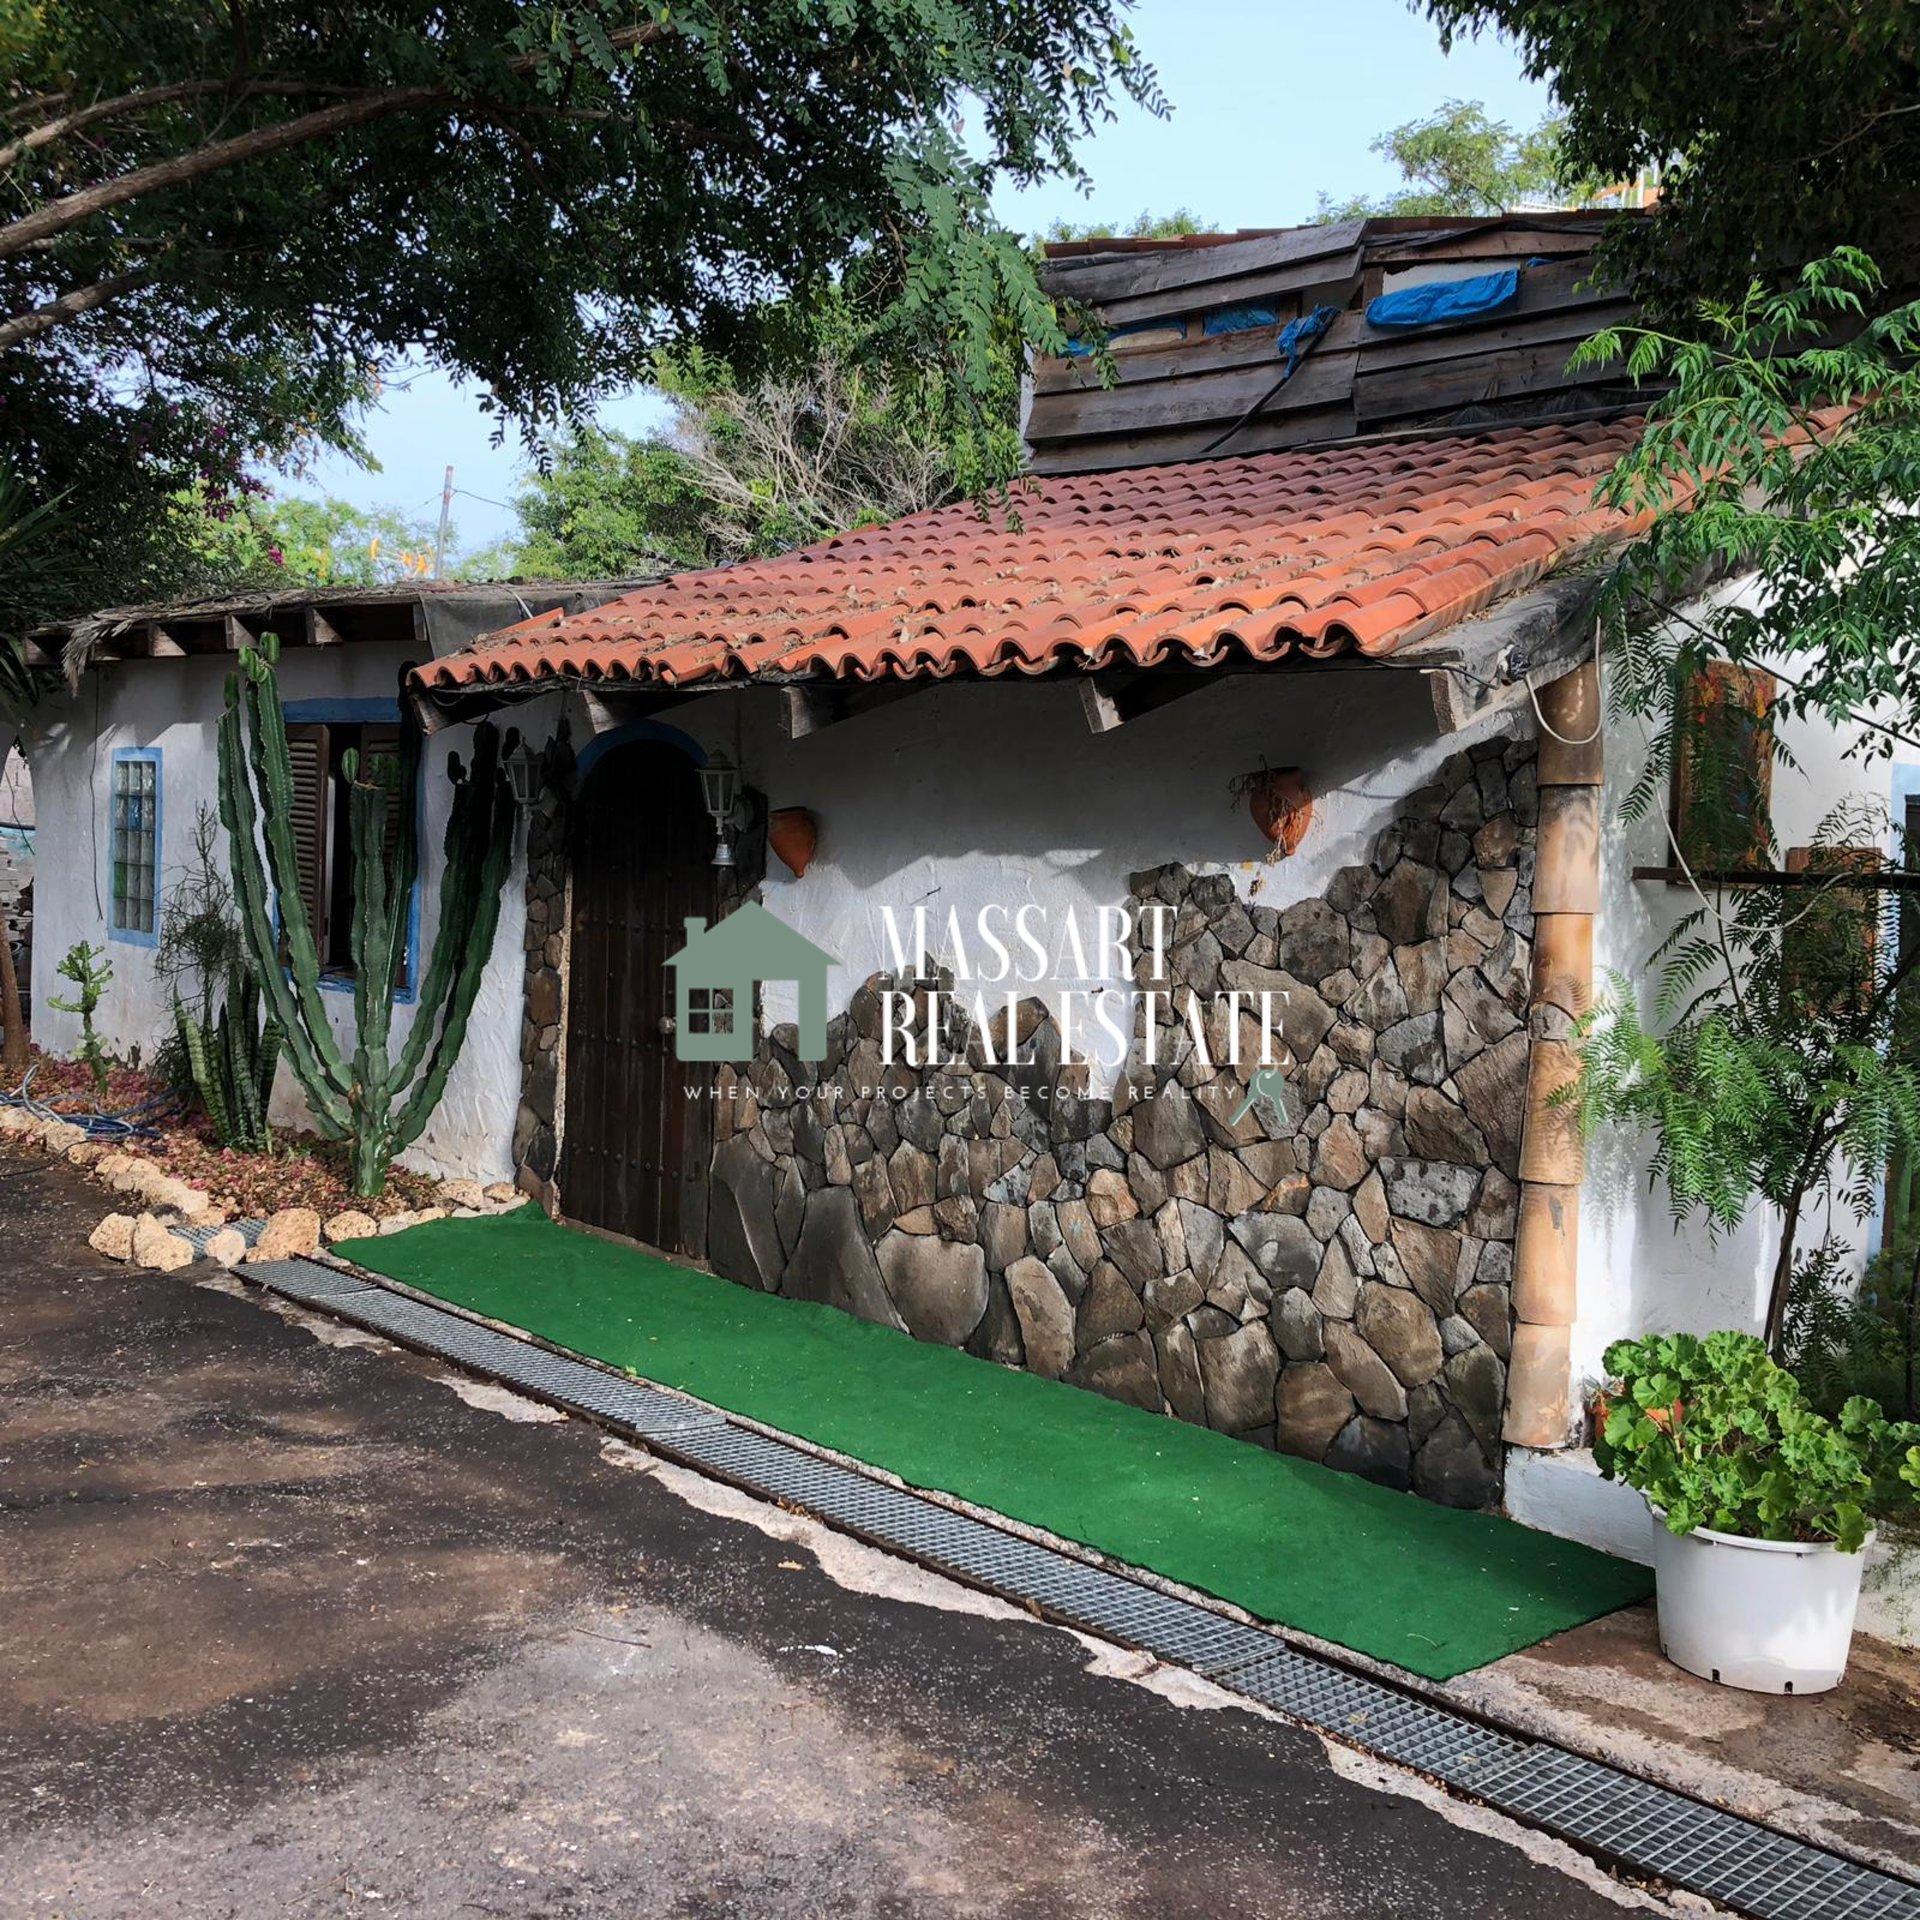 For rent in Granadilla de Abona, fully equipped house located in a rural environment.